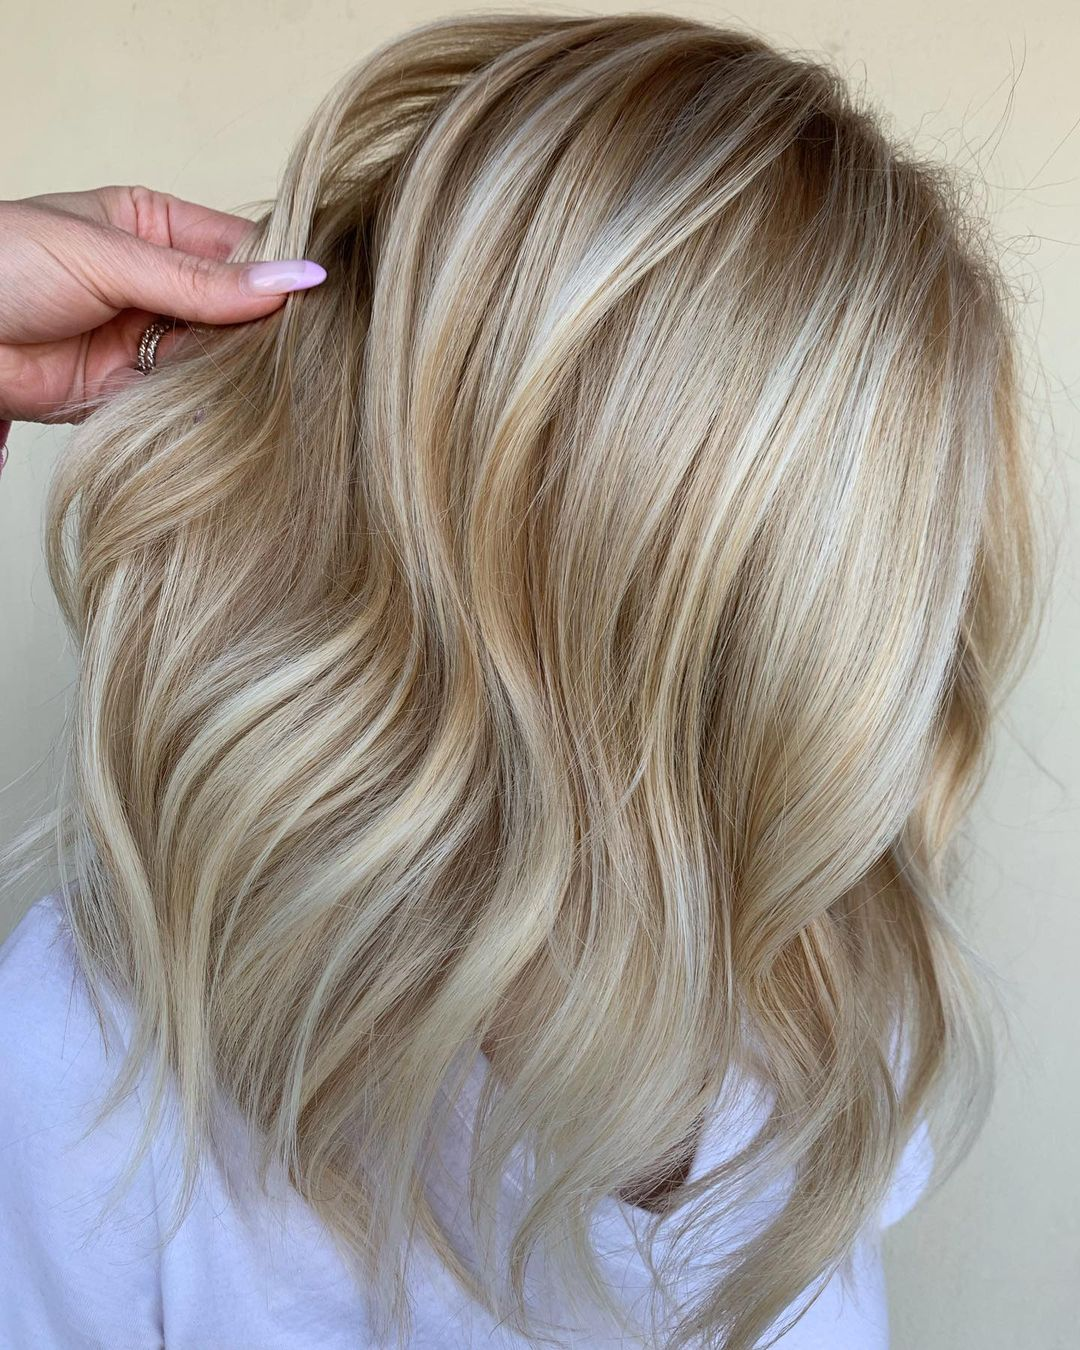 Honey Blonde Balayage with Silver Highlights